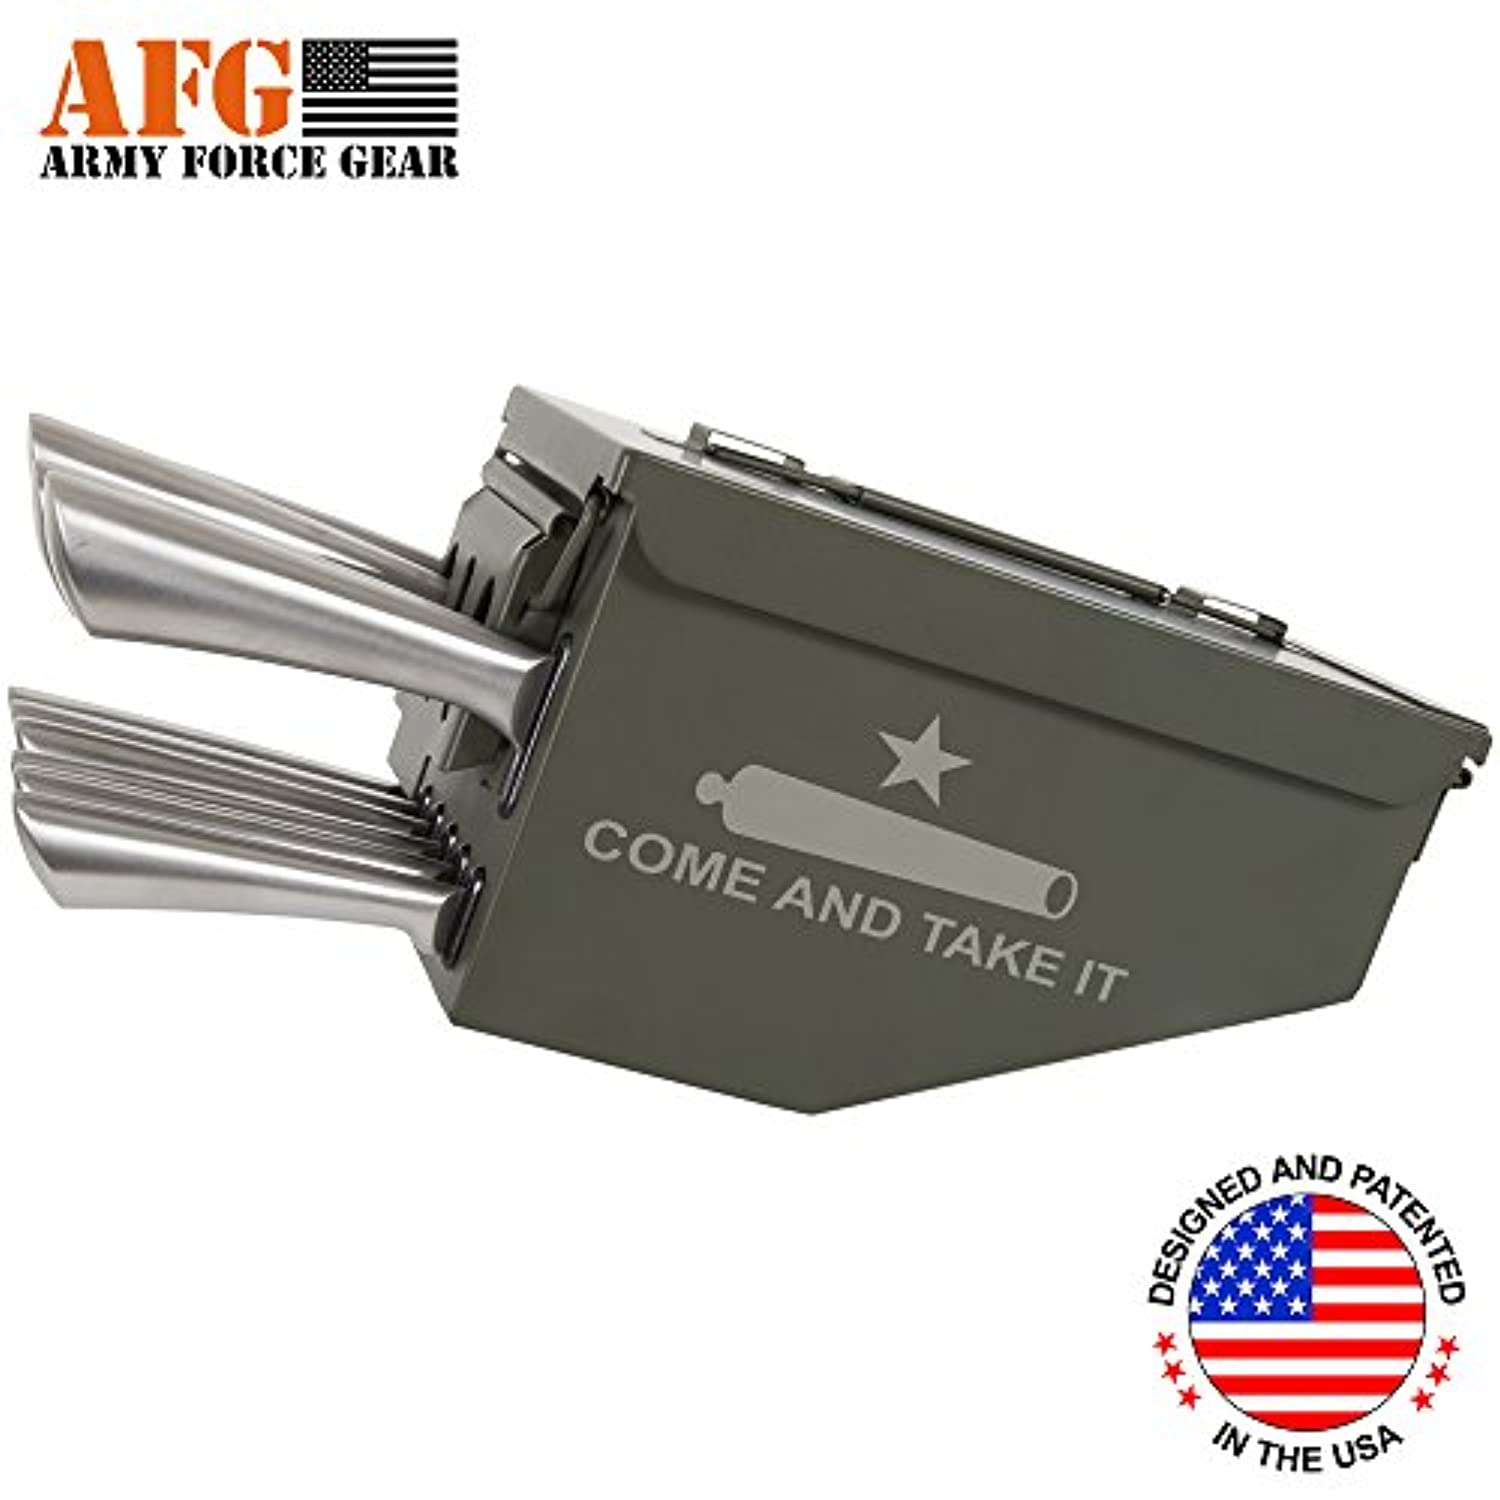 Army Force Gearスチールキッチン10 Piece Ammo CanボックスMilitary Come and Take It Engravedナイフブロックカトラリーシェフナイフ、鋸歯状ステーキナイフセット、三徳ナイフ、Carvingナイフ、パン切りナイフ